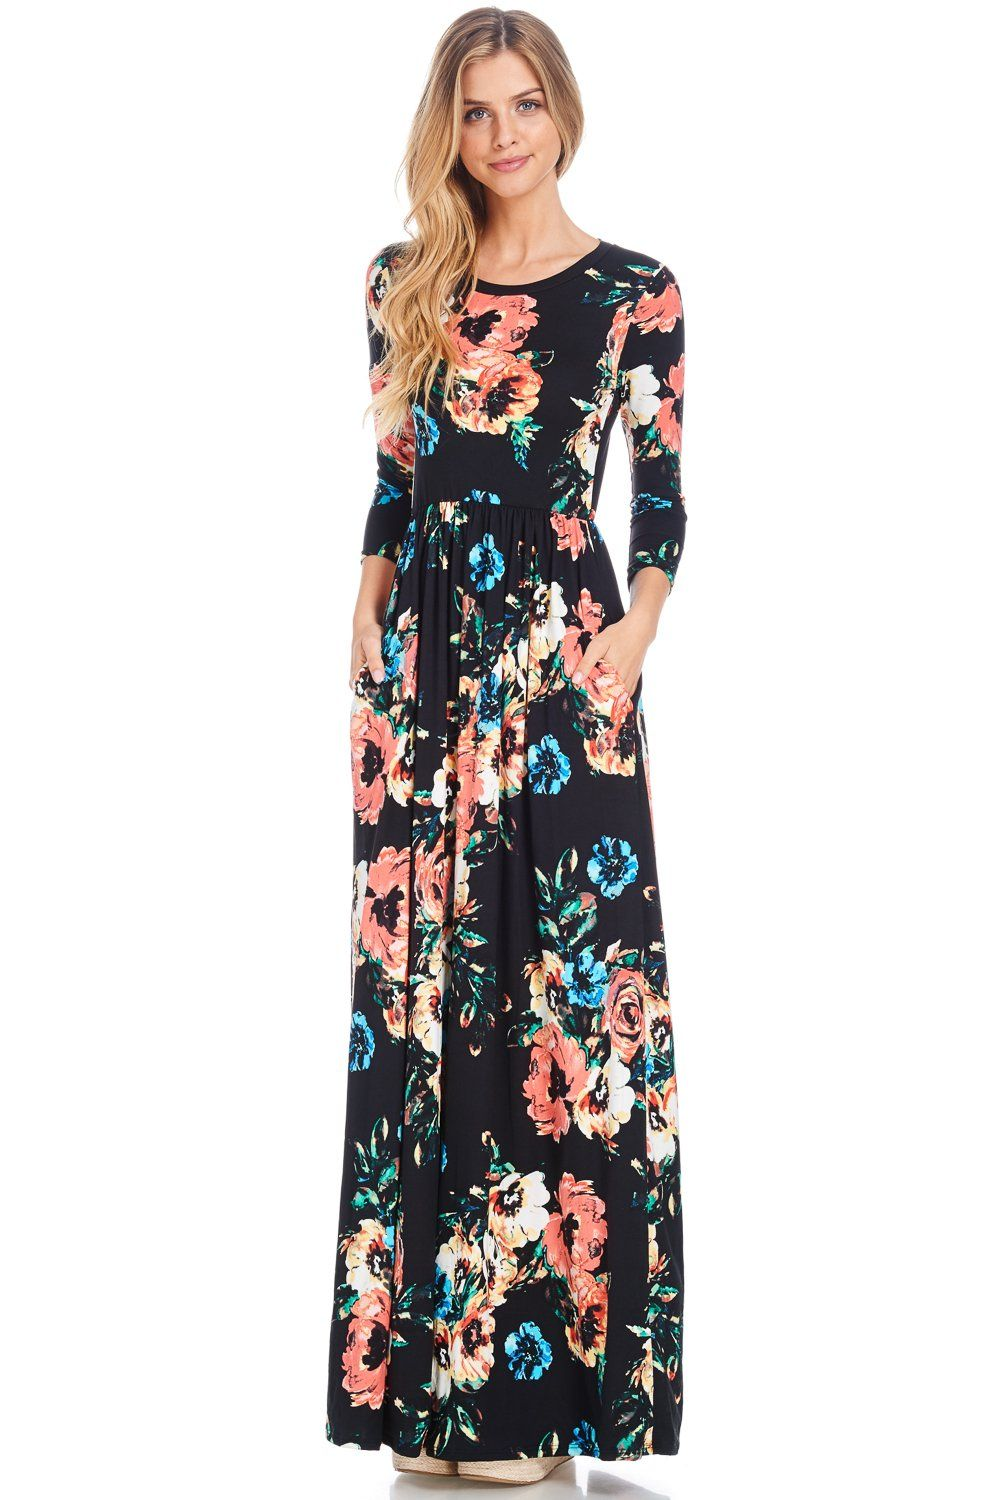 f31a53276b7 Gorgeous Floral Maxi Dress with 3 4 sleeves featuring hidden pockets! Such  a flattering dress. We added this dress to the shop after seeing a friend  wearing ...